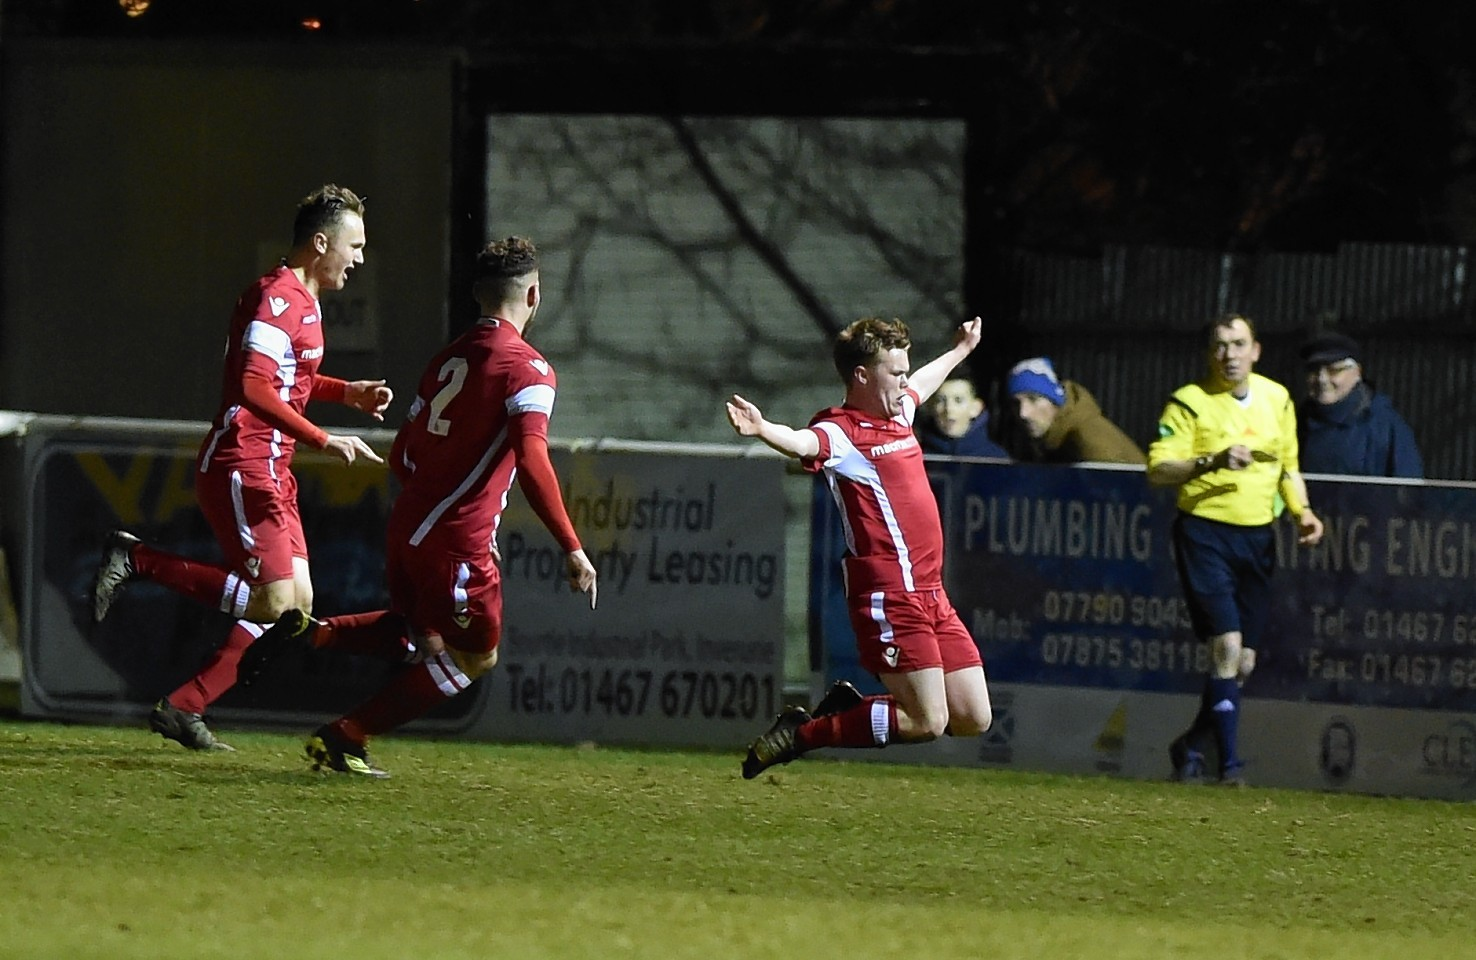 Ifana Jones (8) celebrates his goal. Picture by Colin Rennie